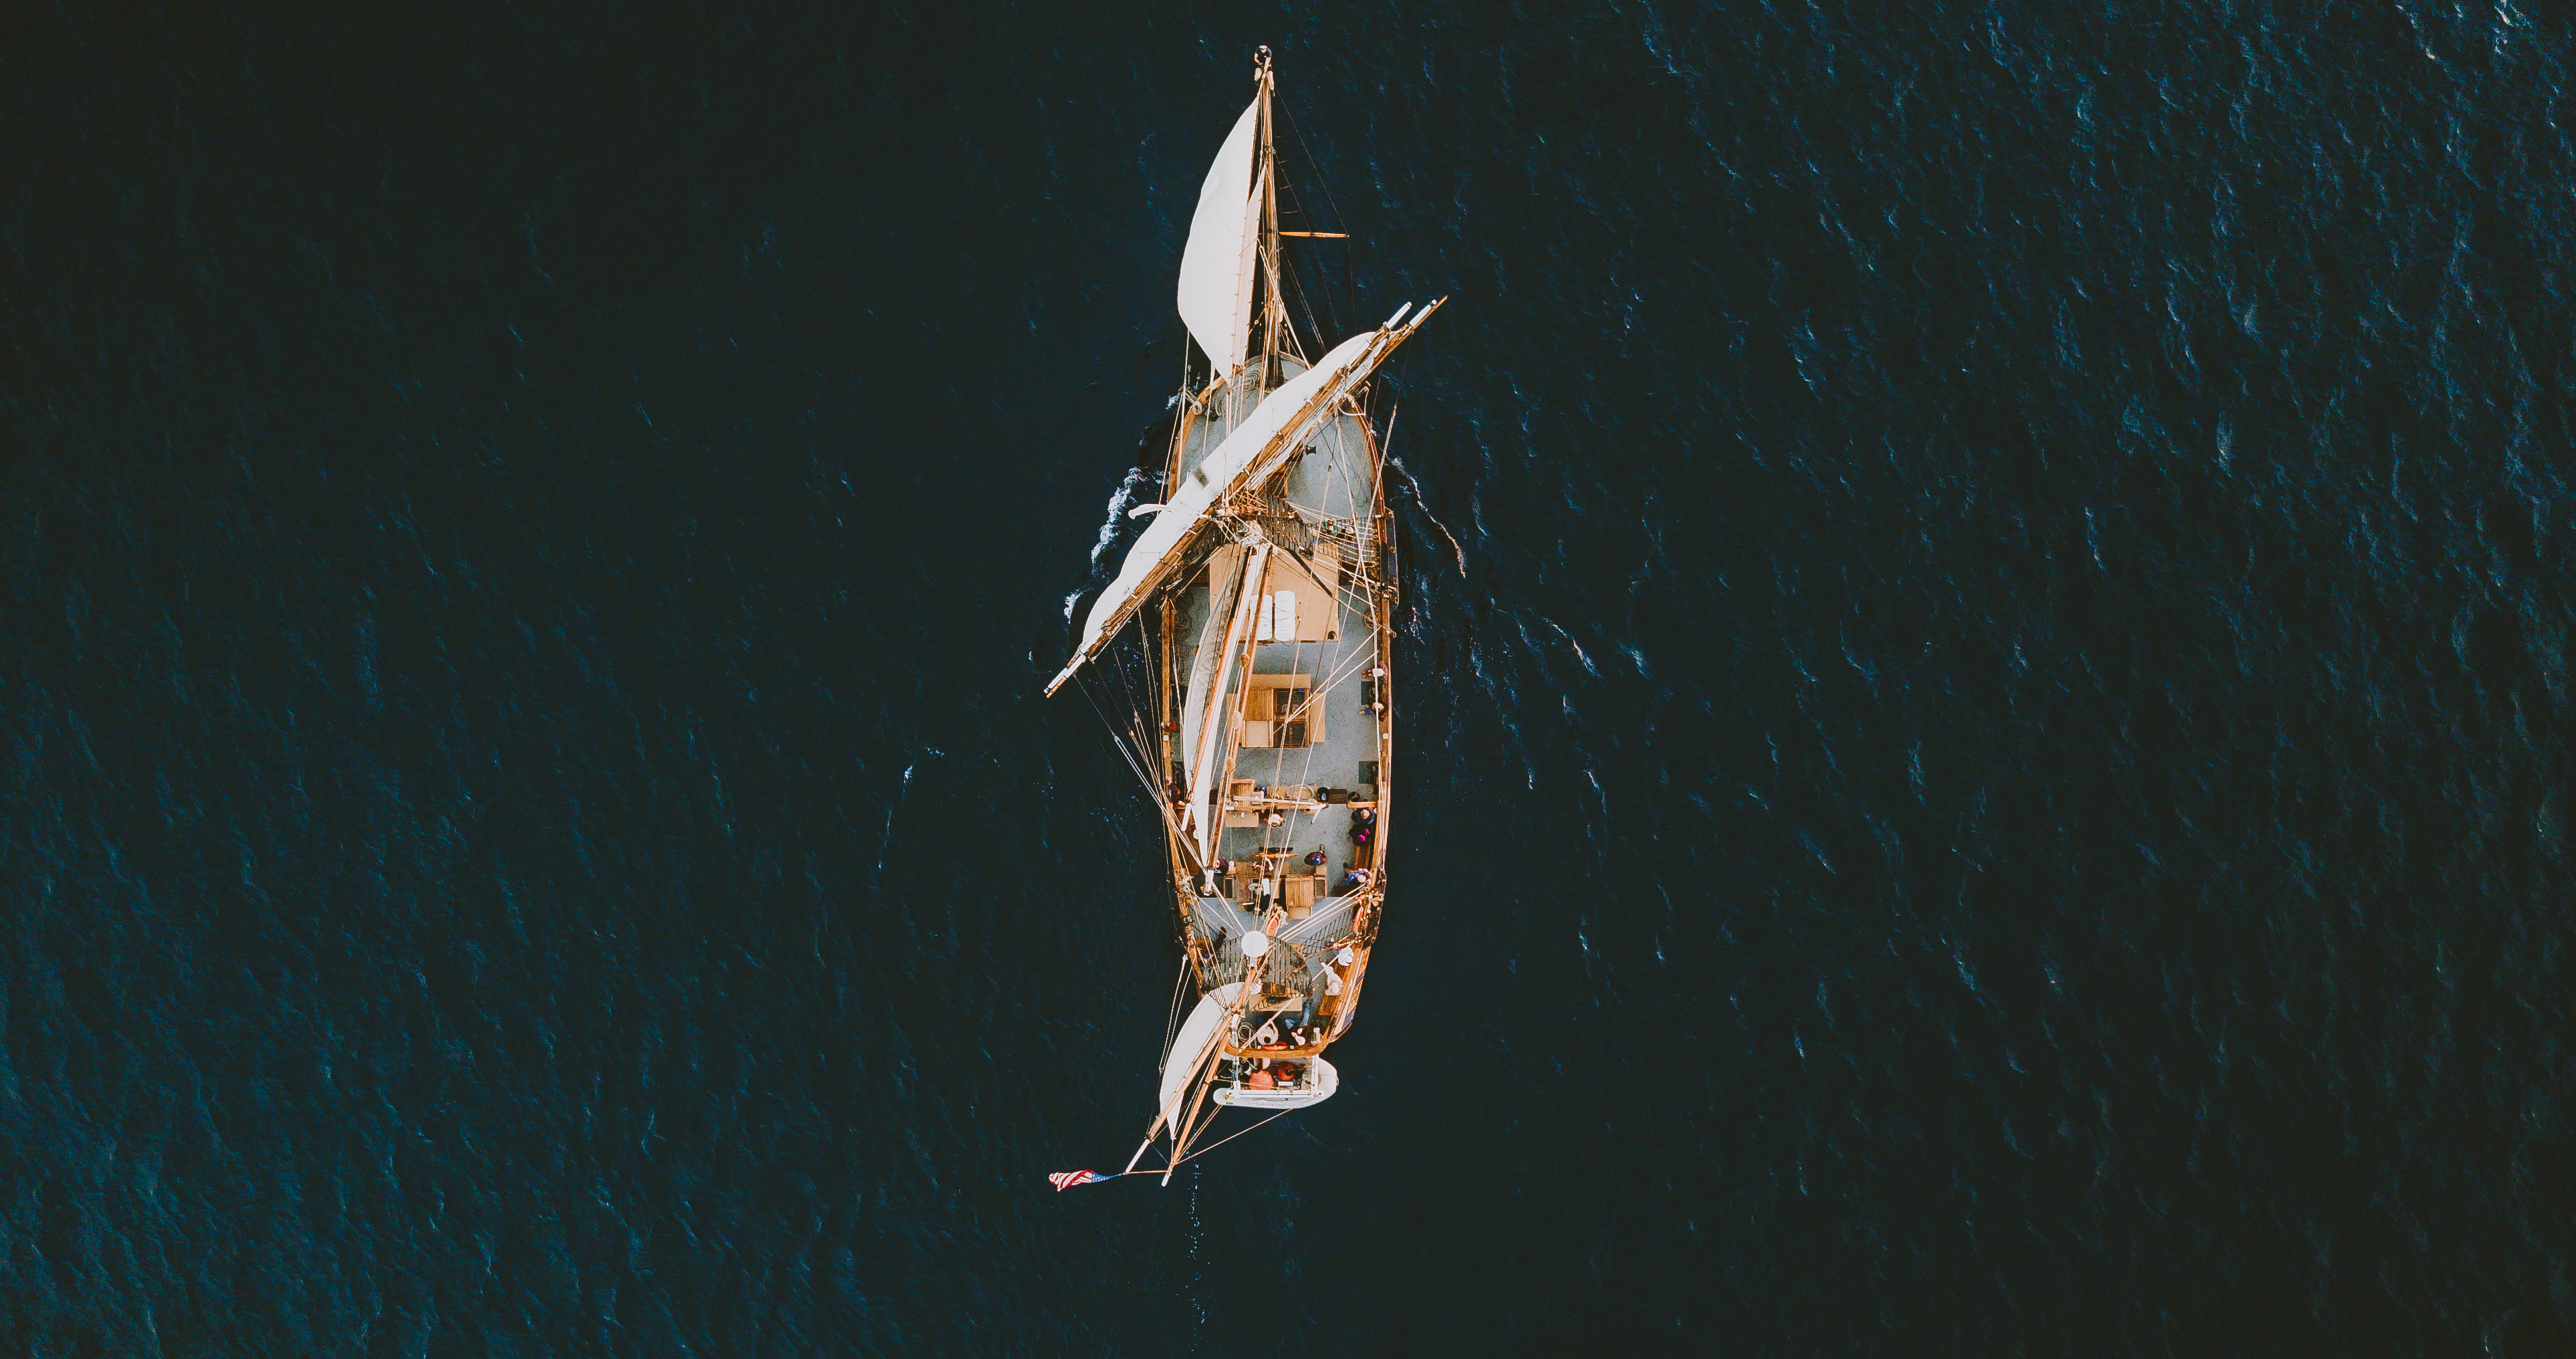 100  4Kwallpaper Pictures  HD    Download Free Images on Unsplash aerial view photography of ship on body of water